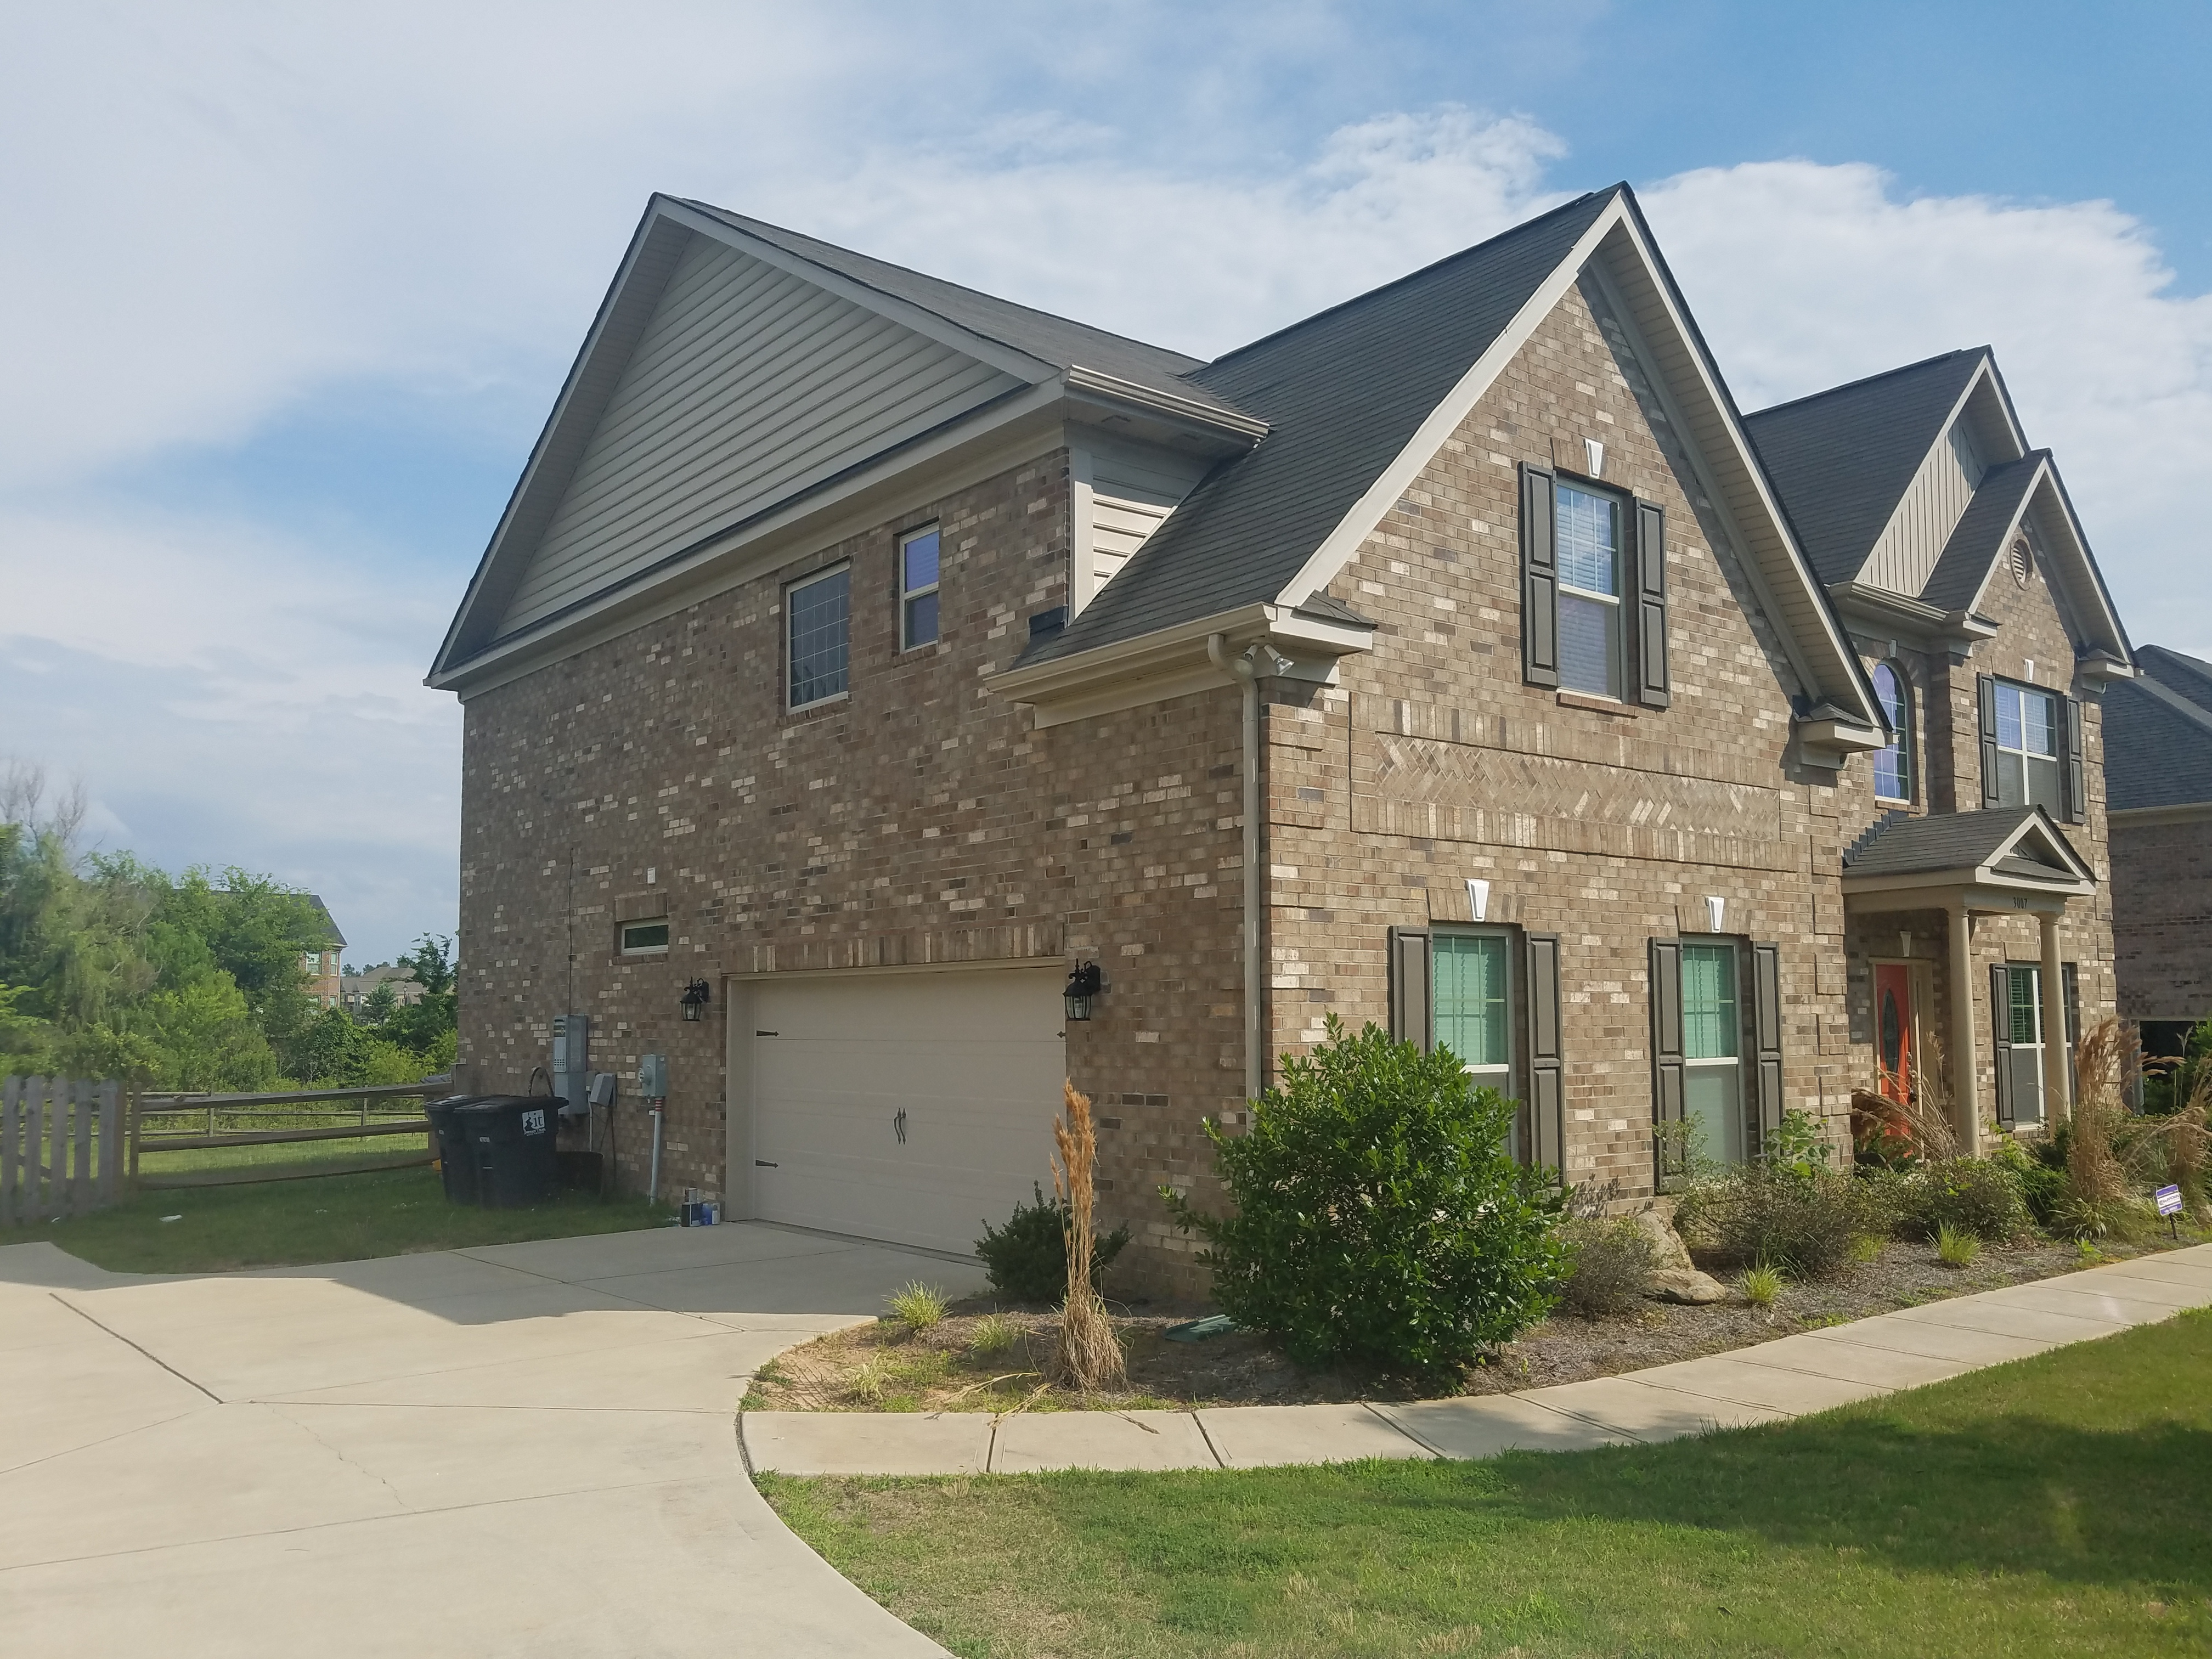 Photo of 3007 Thorndale Rd, Indian Trail, NC, 28079